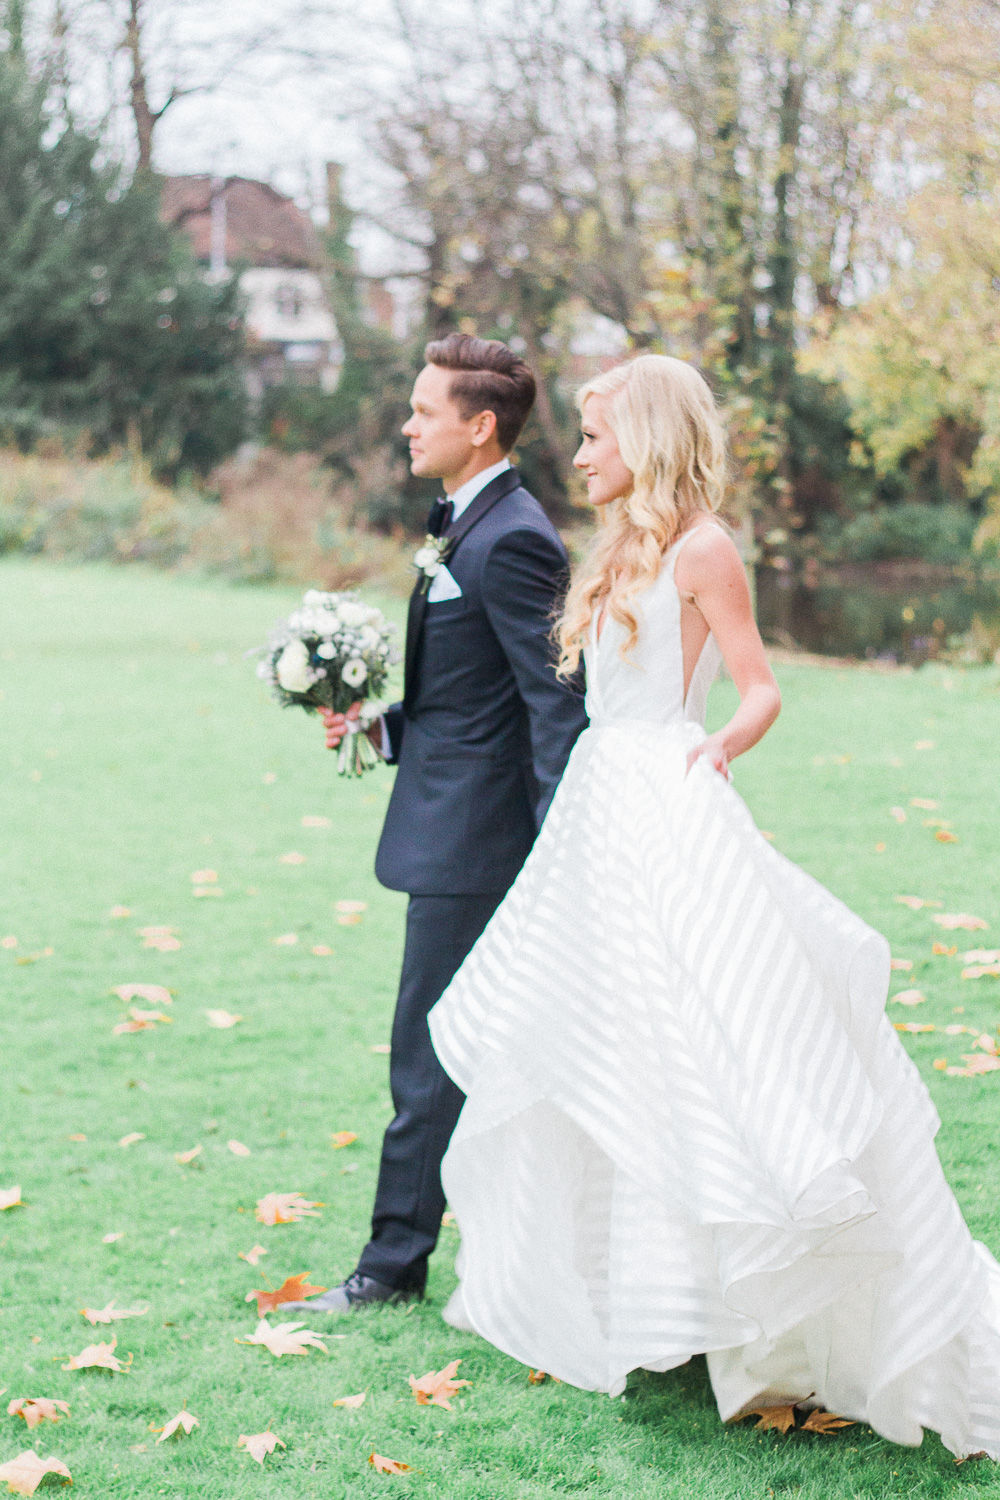 Bride and groom in the grounds of Morden Hall wedding venue in London